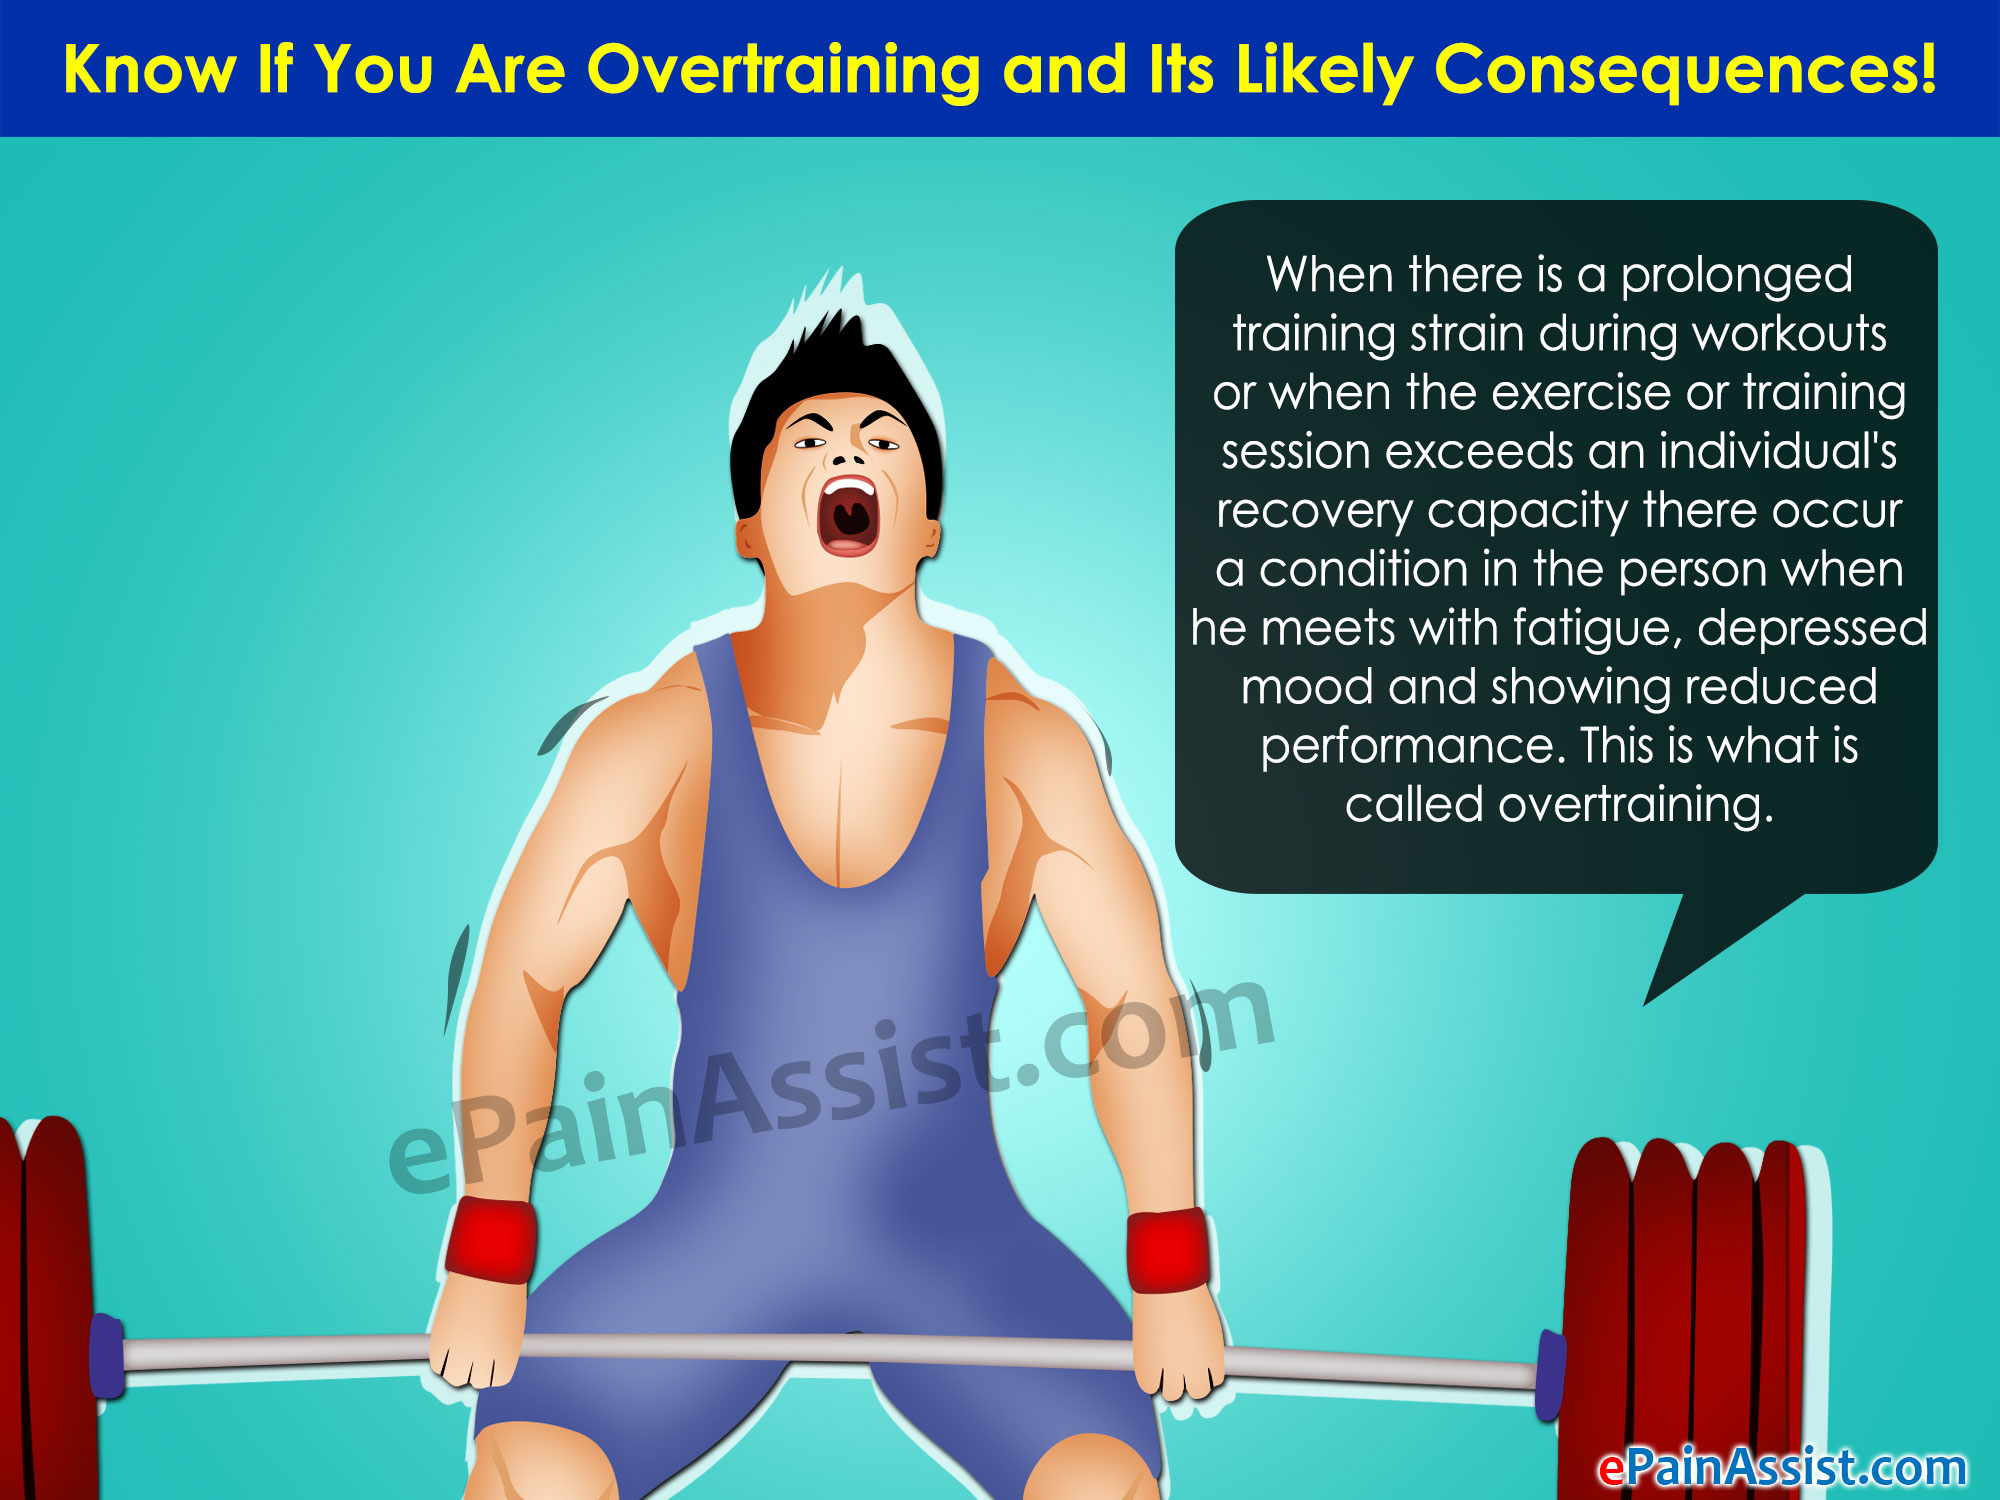 Overtraining and Its Likely Consequences